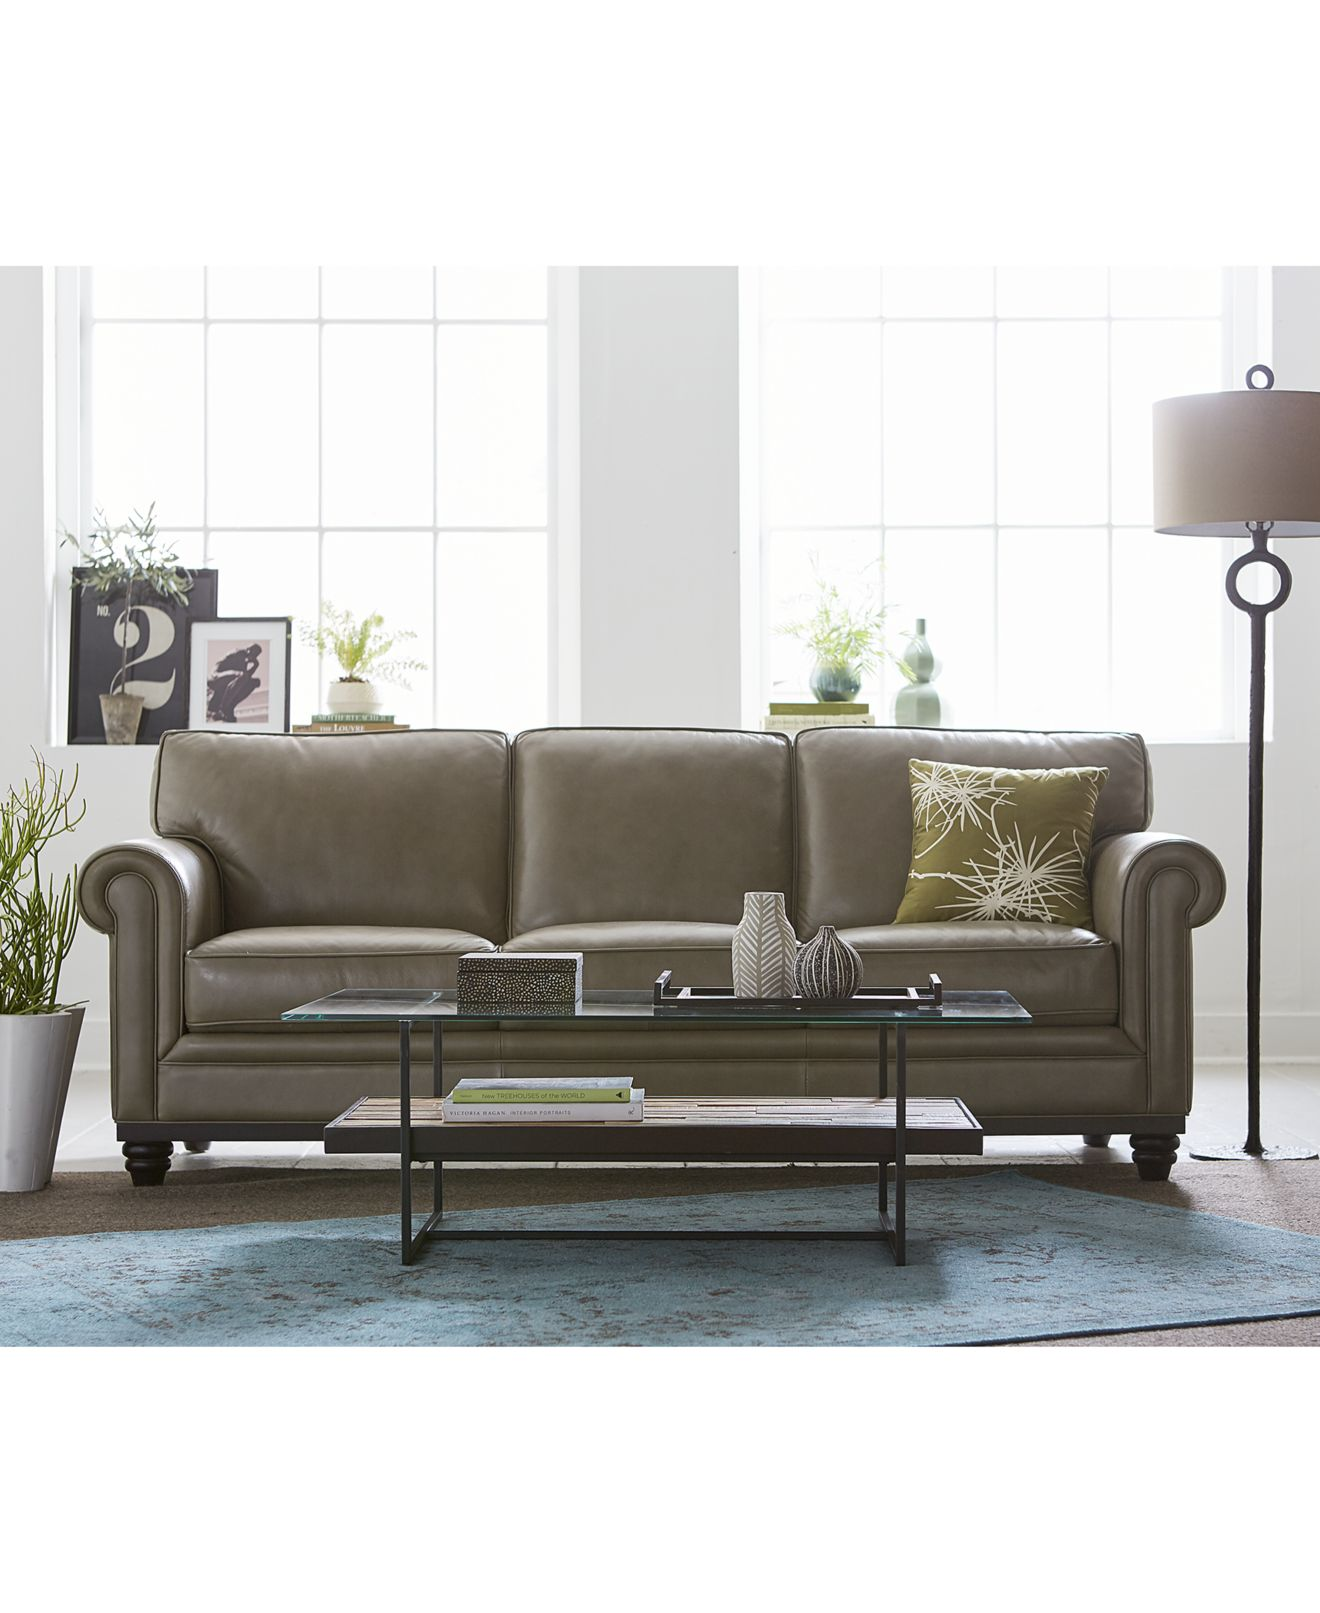 Martha stewart bradyn leather sofa living room furniture collection